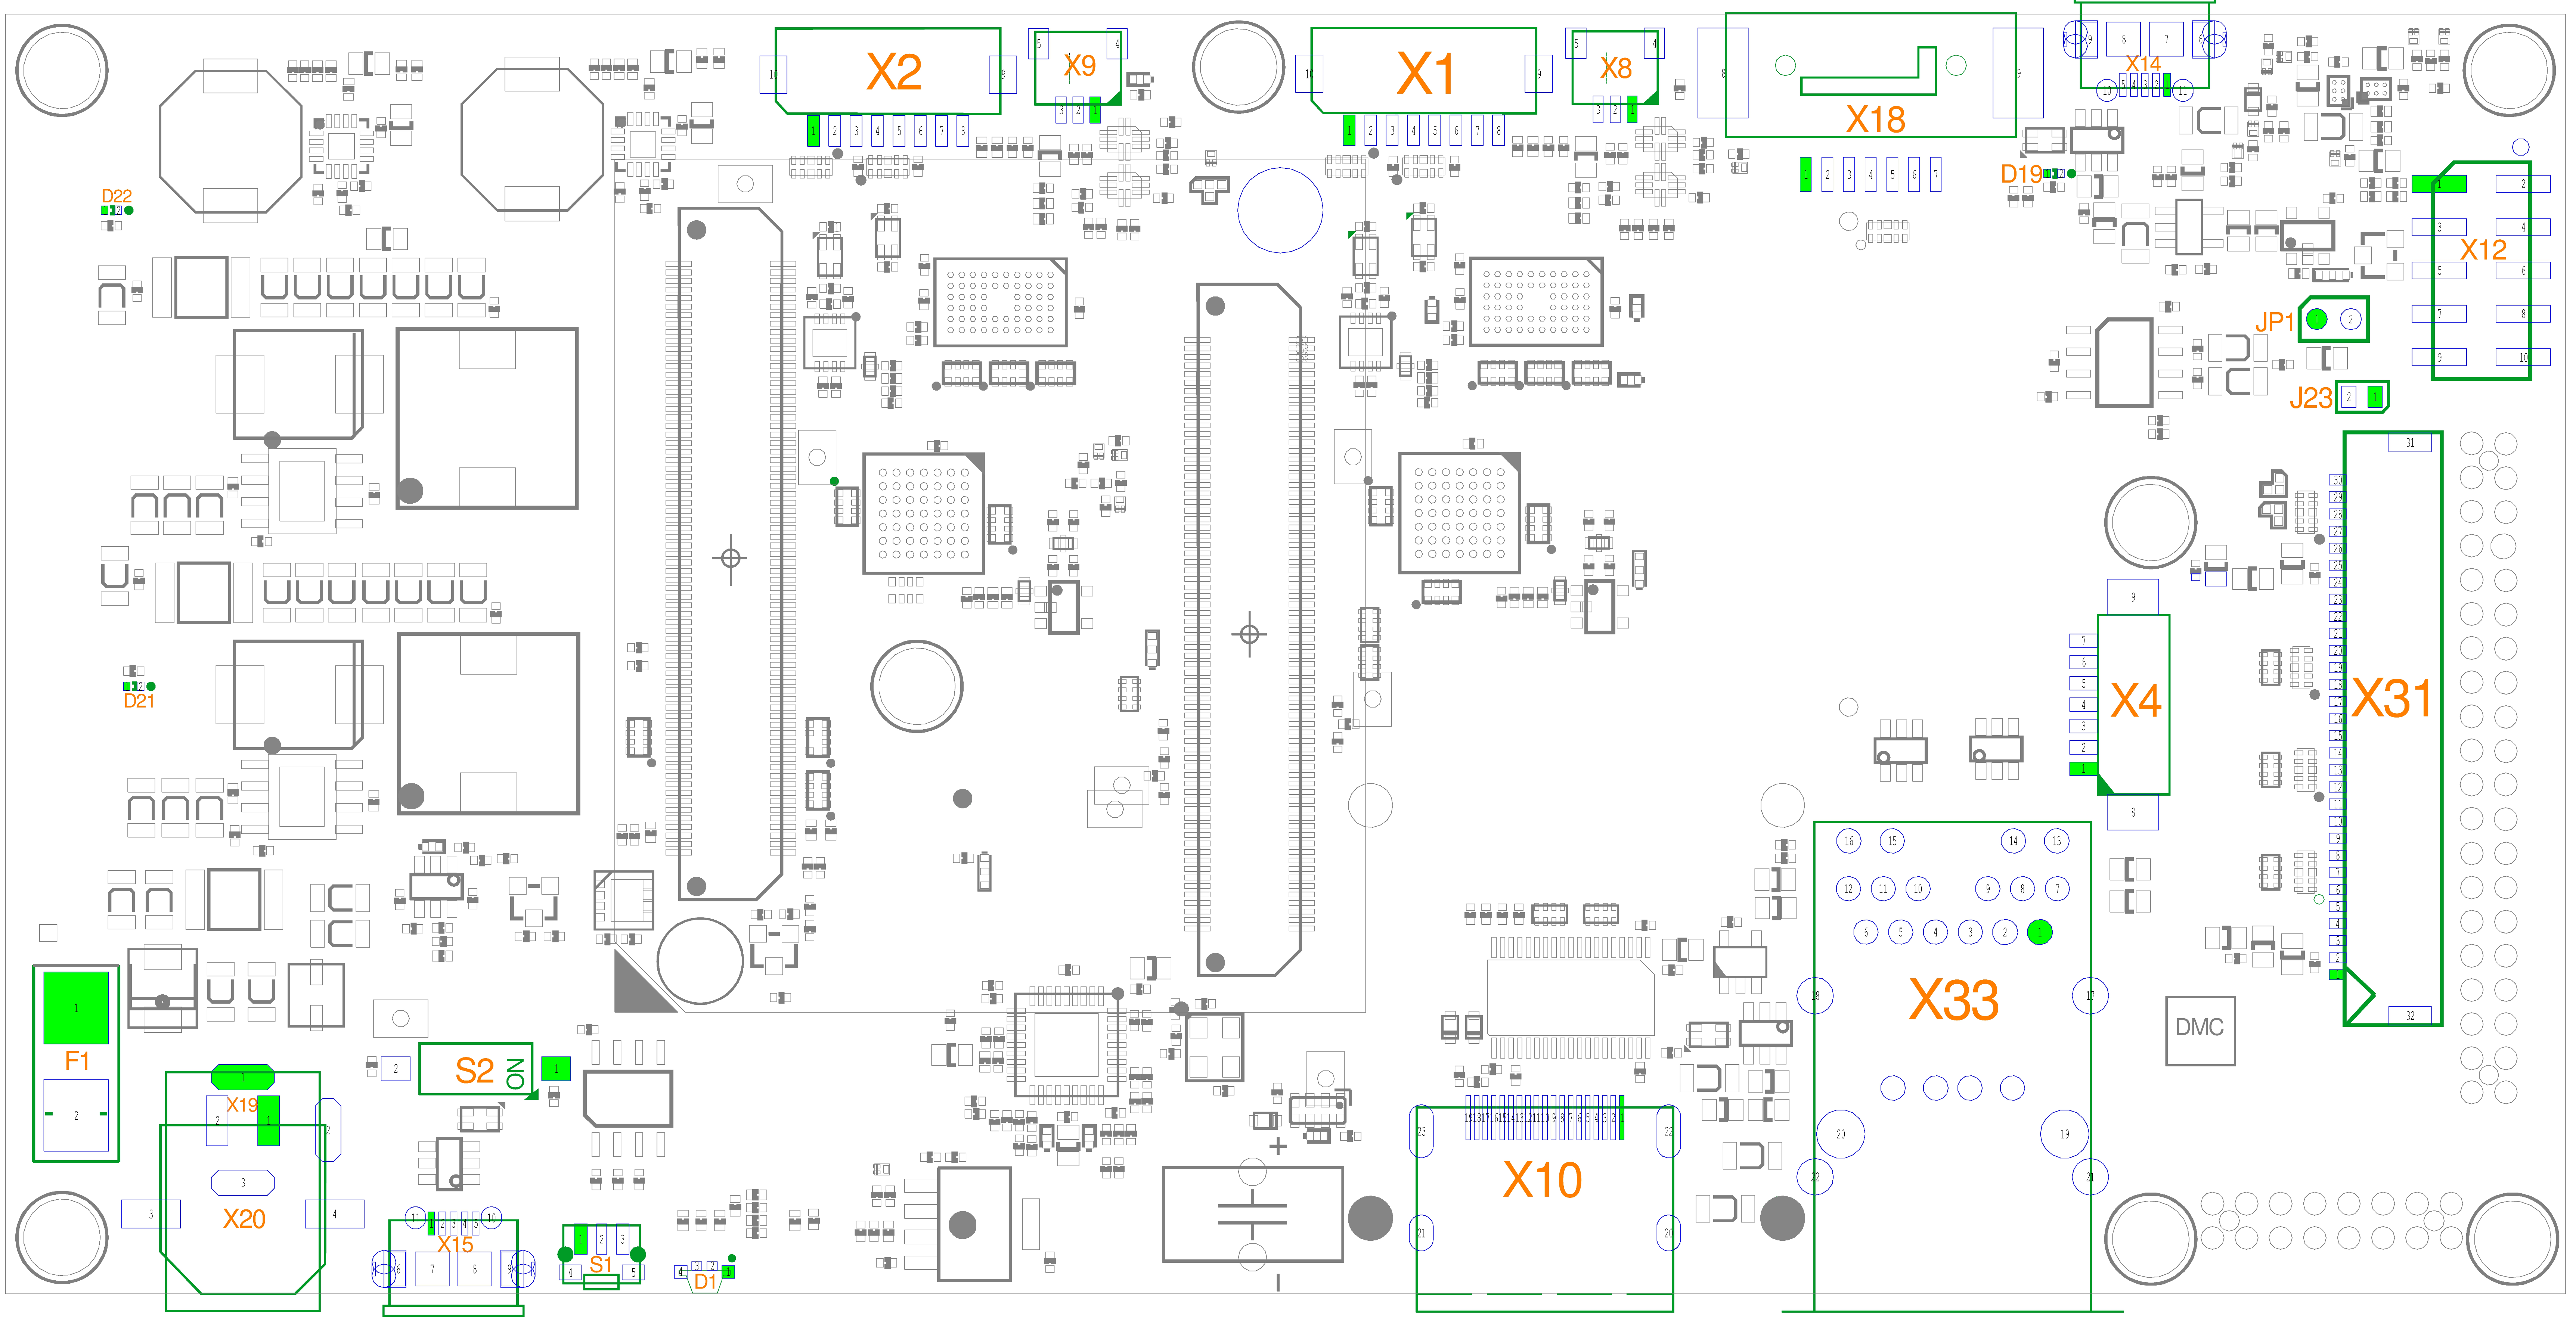 phyBOARD-Nunki i.MX 6 Component Placement (Top)